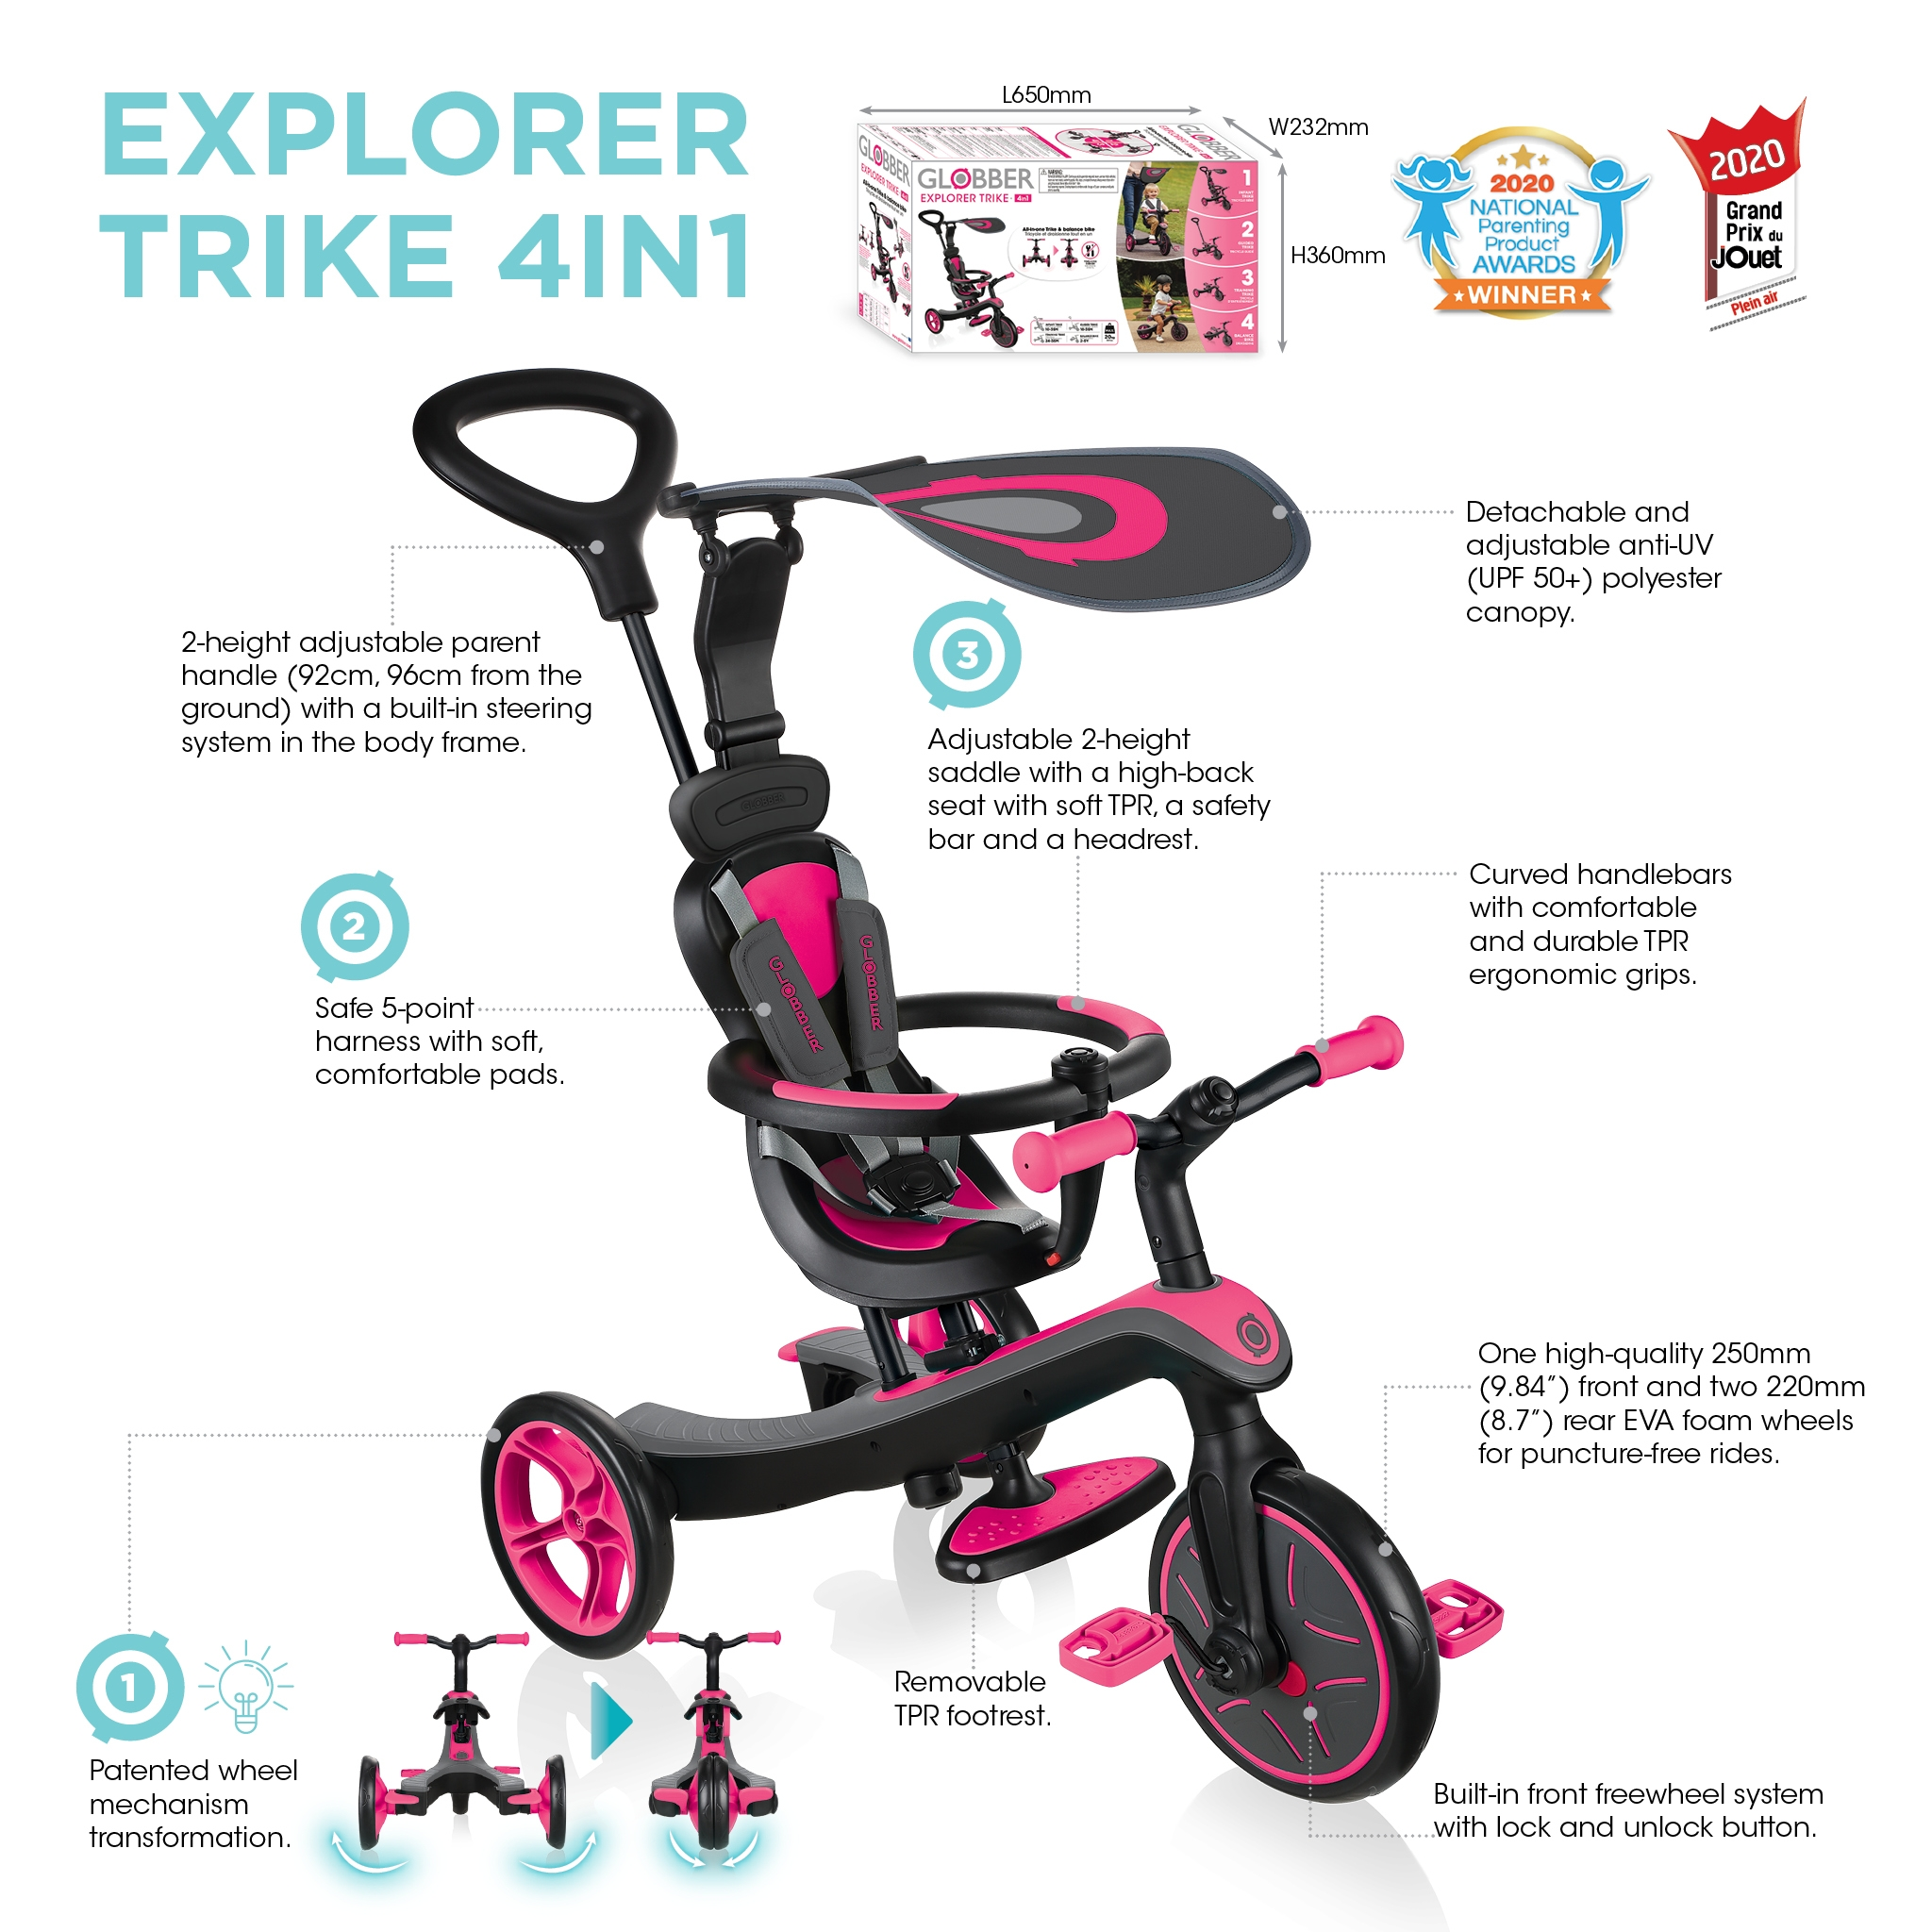 Globber-EXPLORER-TRIKE-4in1-all-in-one-baby-tricycle-and-kids-balance-bike-with-tool-less-design 5